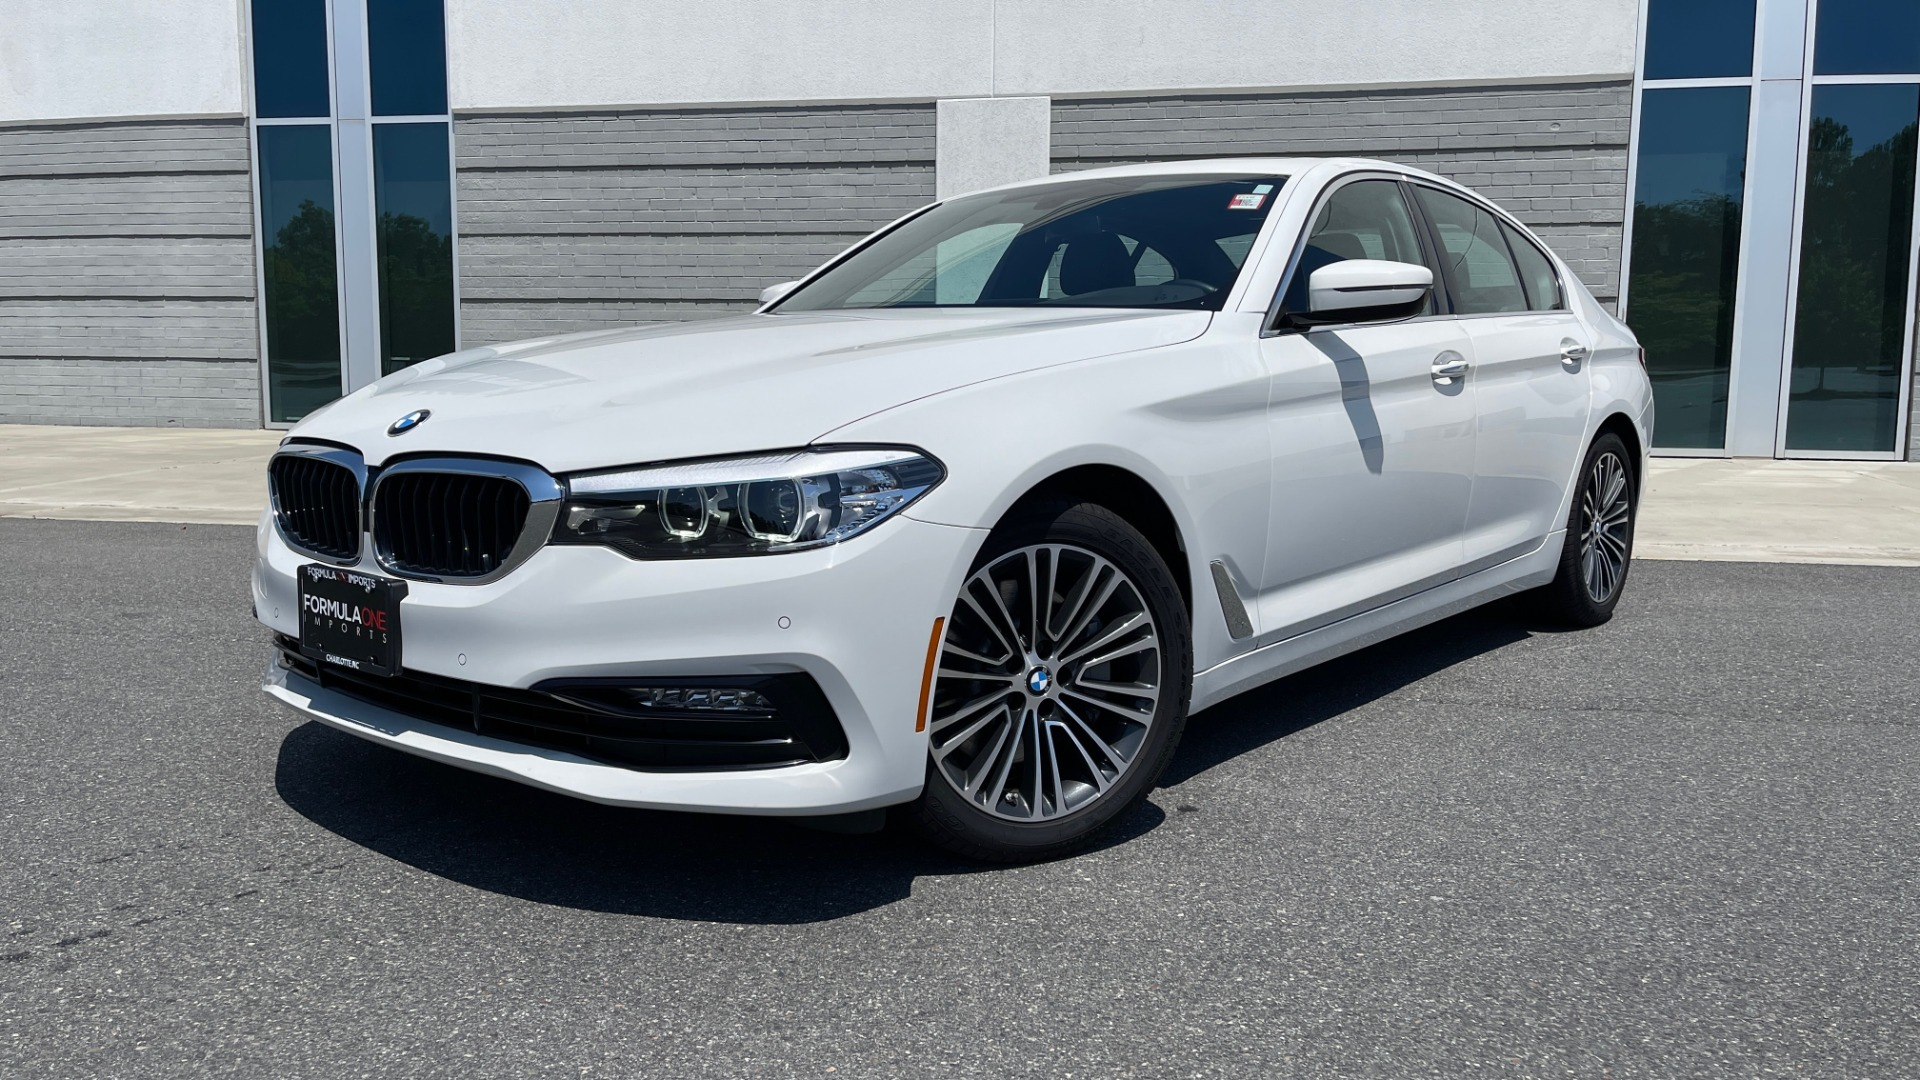 Used 2018 BMW 5 SERIES 540IXDRIVE PREMIUM / PARK ASSIST / KEYLESS ENTRY / SUNROOF / REARVIEW for sale $42,995 at Formula Imports in Charlotte NC 28227 1